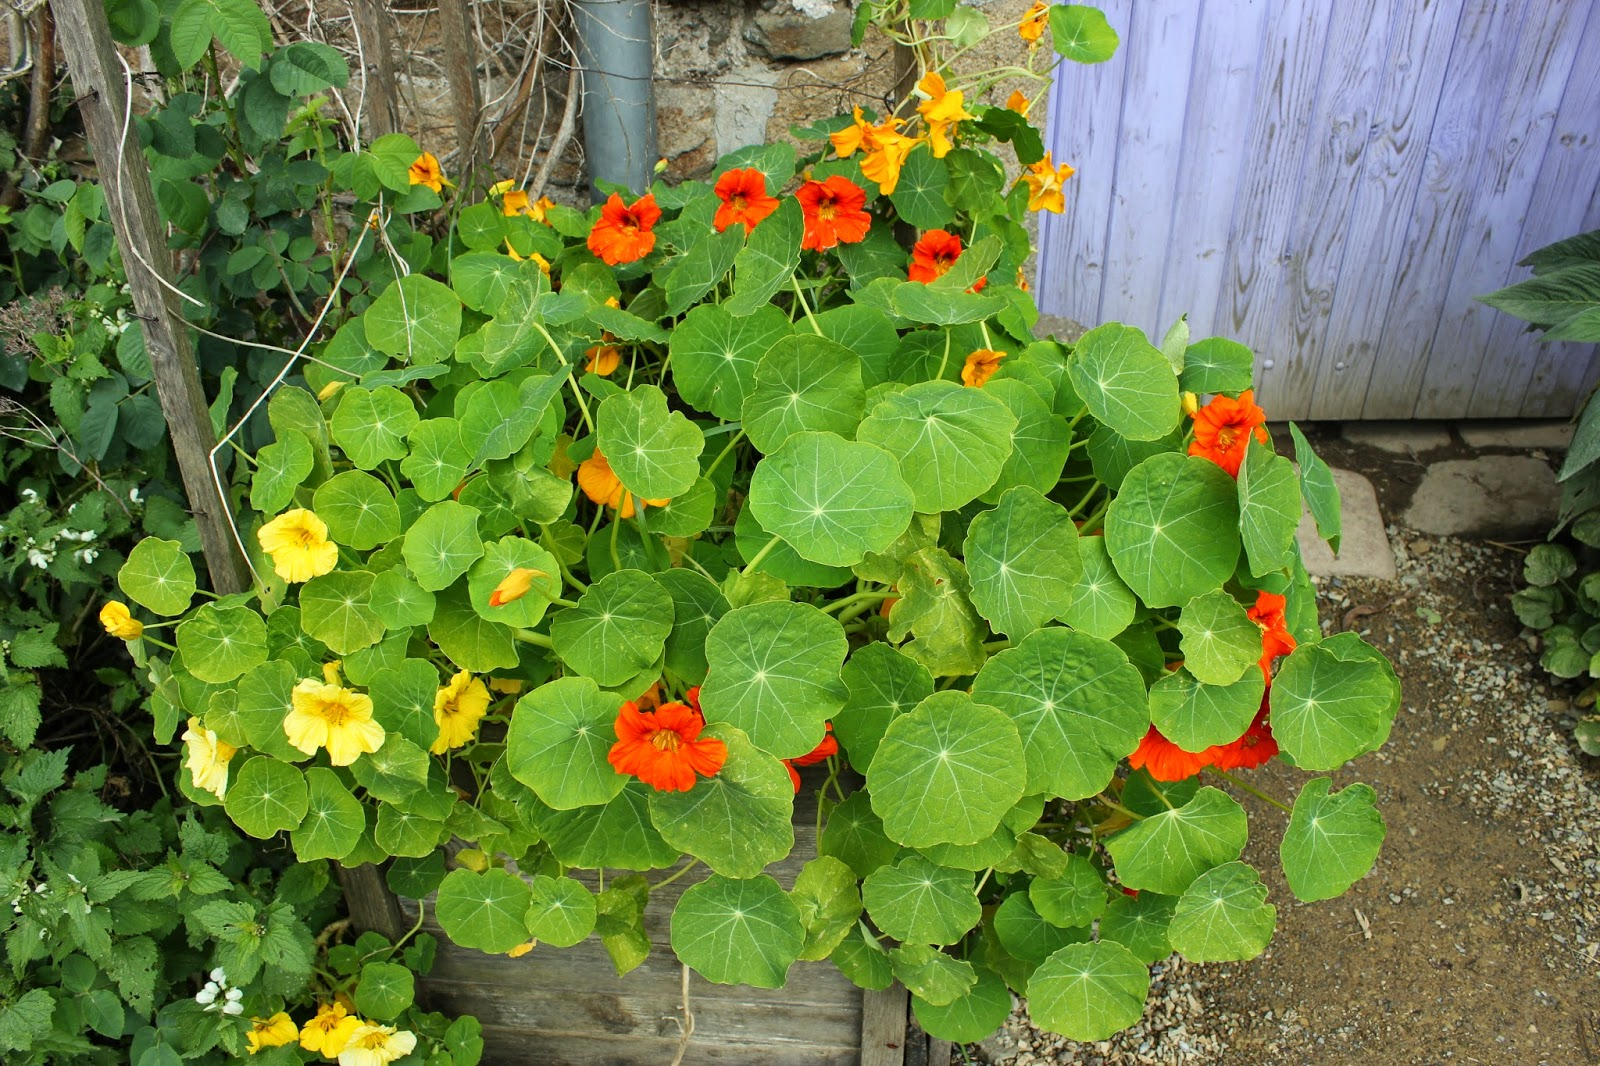 nasturtiums, a food crop in a pallet wood container